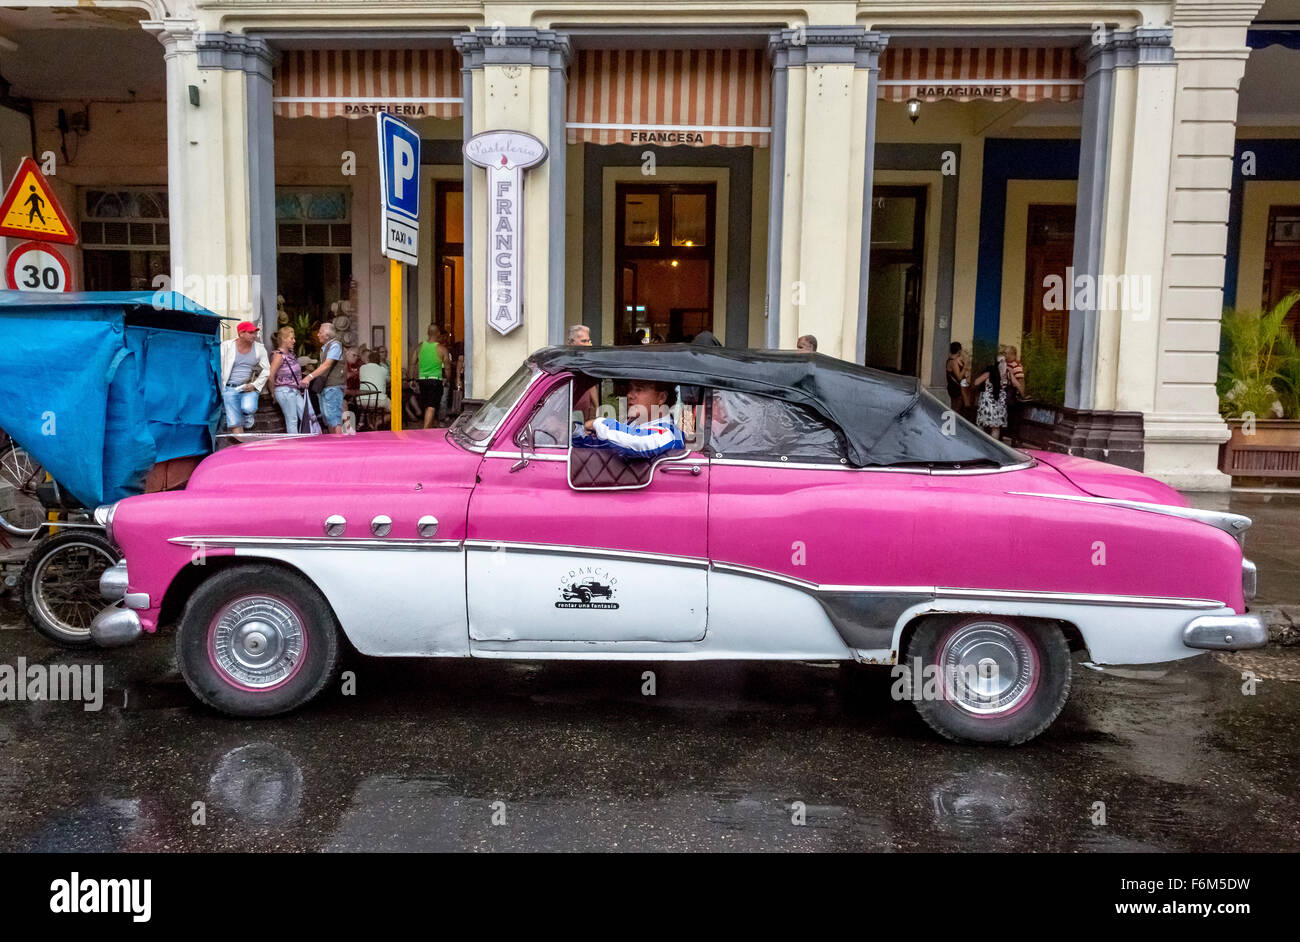 Oldtimer, convertible in the rain with closed roof, old limousines, pink, rain in Cuba, Street Scene, Cuba, North - Stock Image